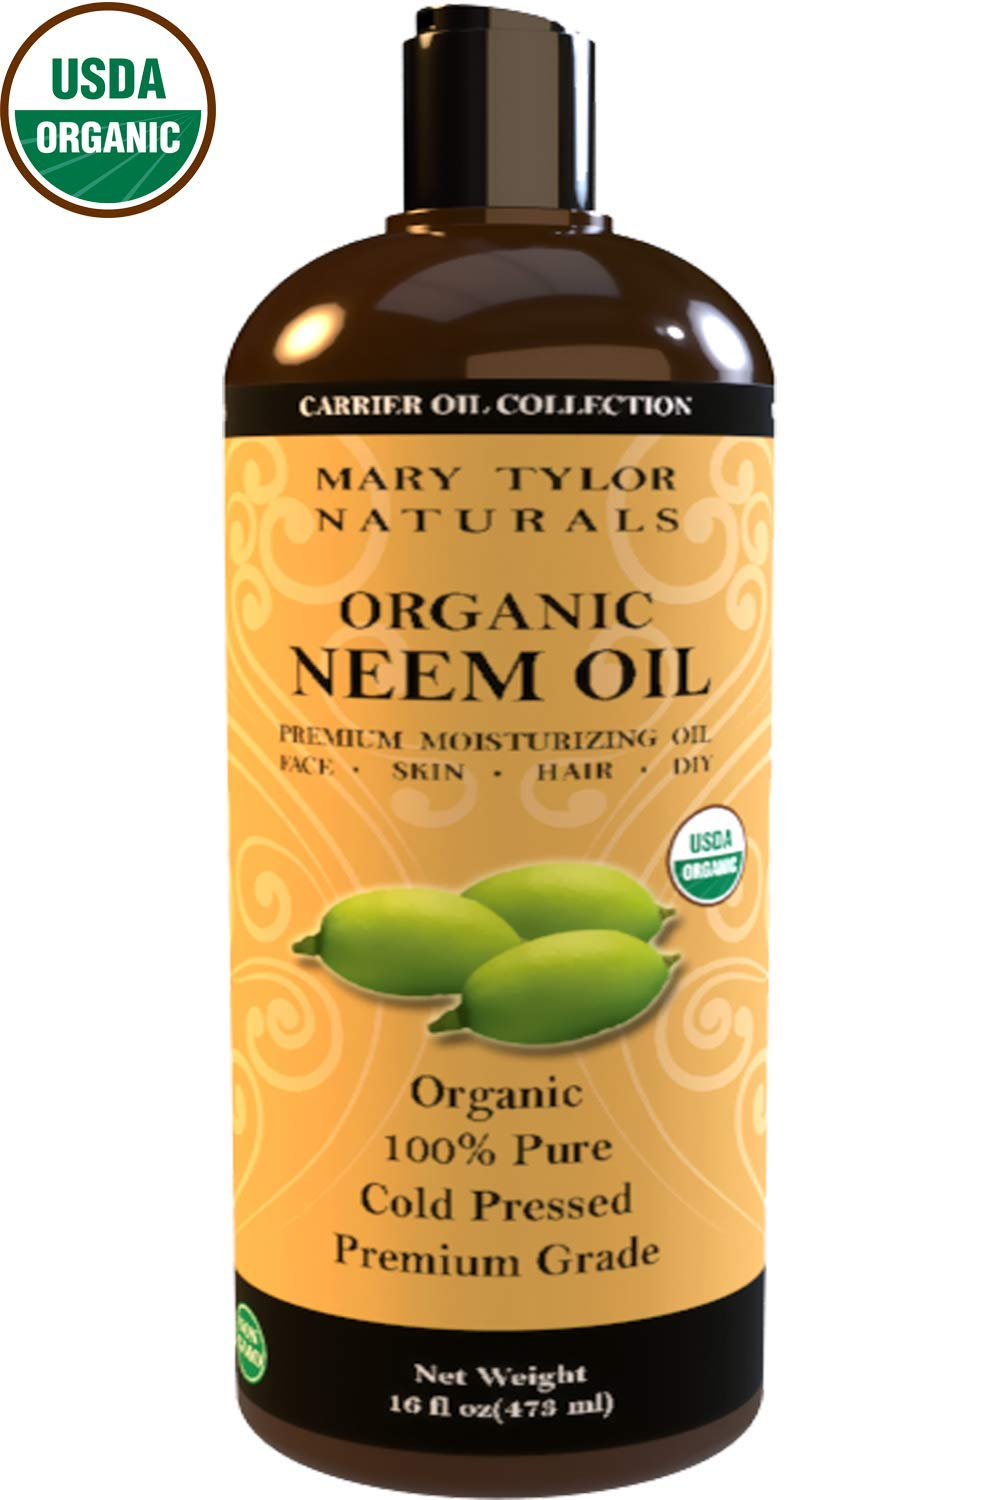 Organic Neem Oil (16 oz), USDA Certified, Cold Pressed, Unrefined, Premium Quality, 100% Pure Great for Skincare and Hair Care by Mary Tylor Naturals